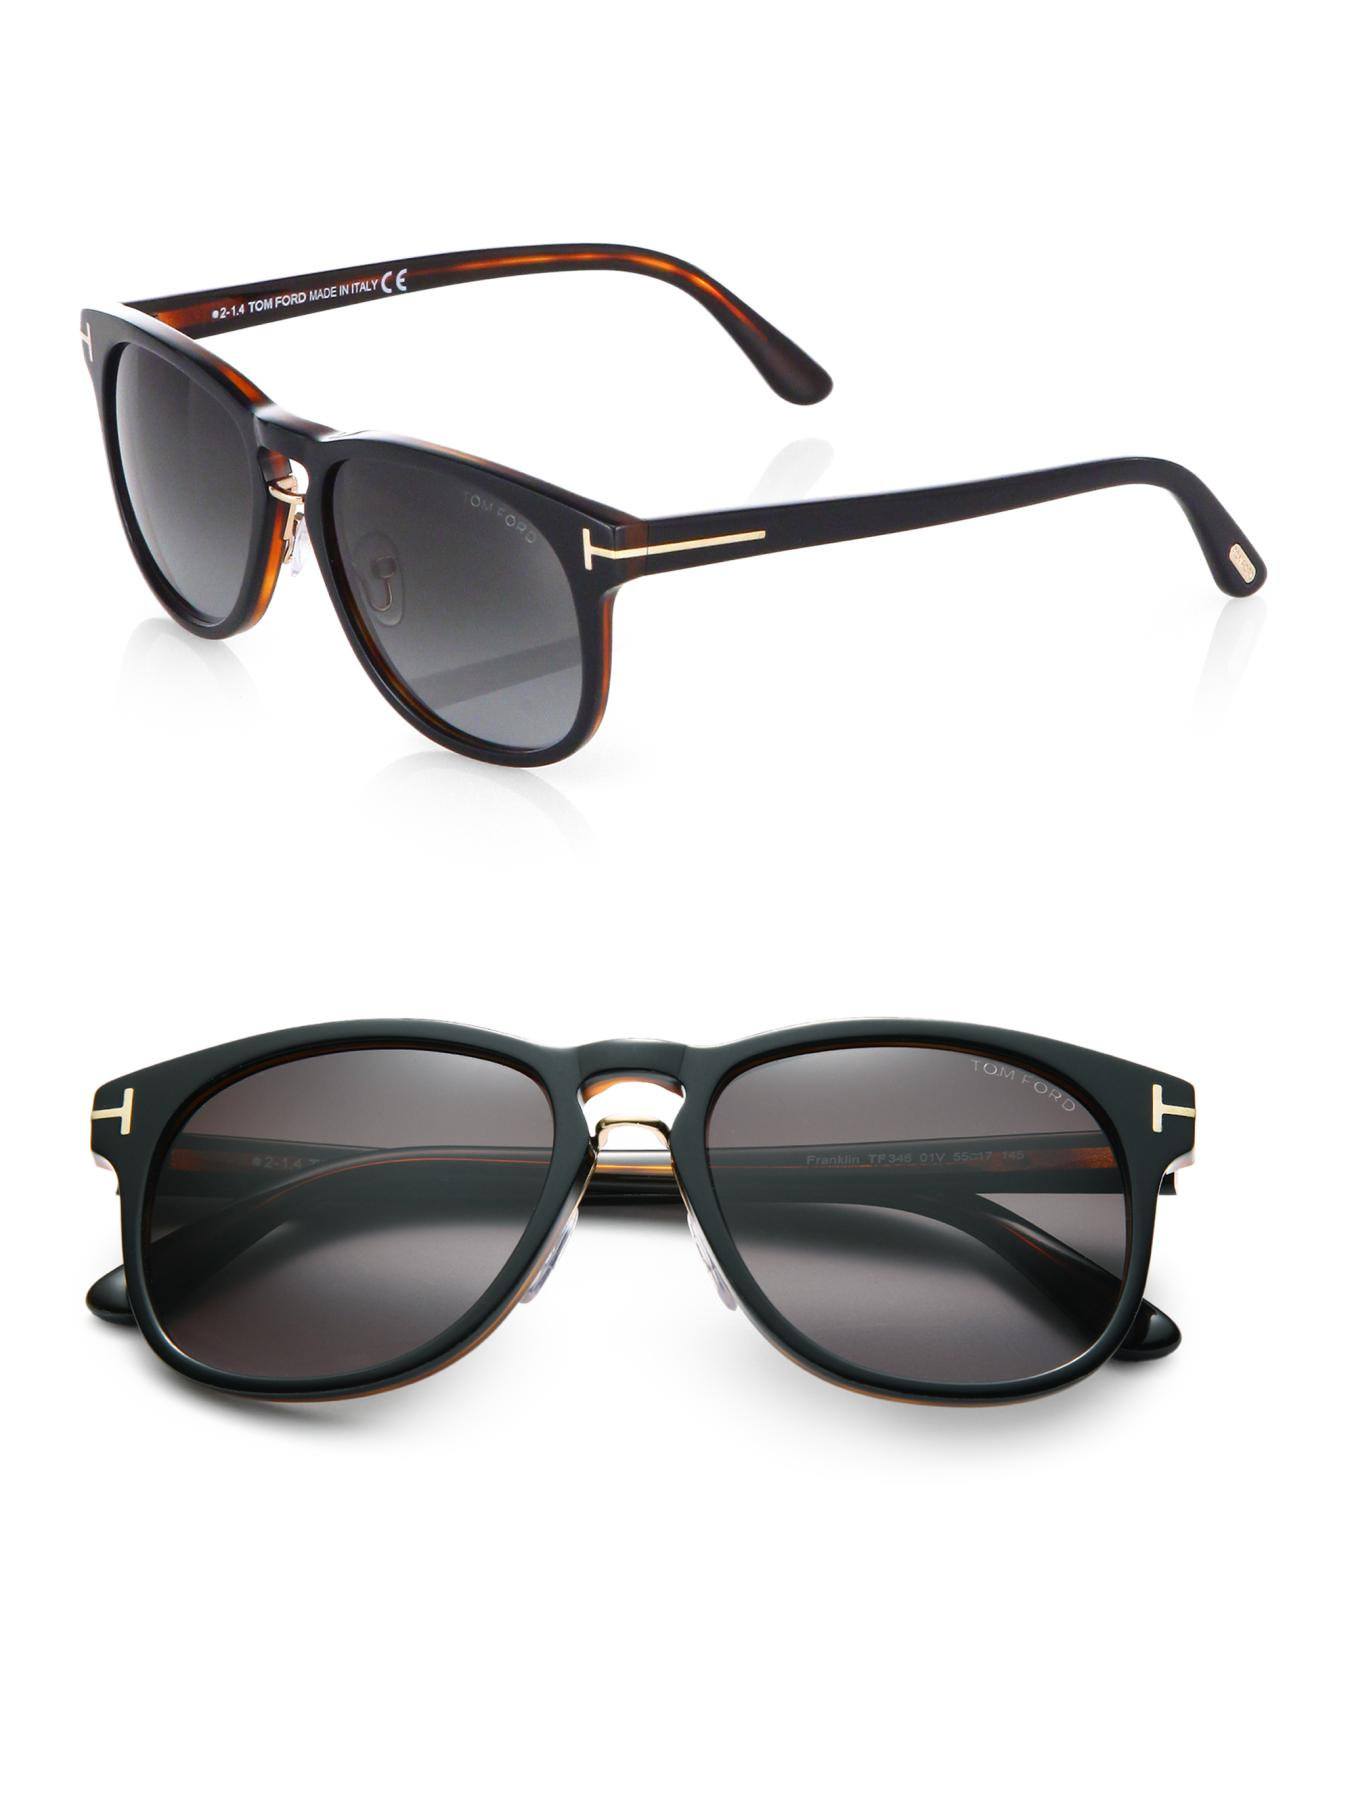 tom ford eyewear black cade 55mm acetate sunglasses product 1 21947347. Cars Review. Best American Auto & Cars Review